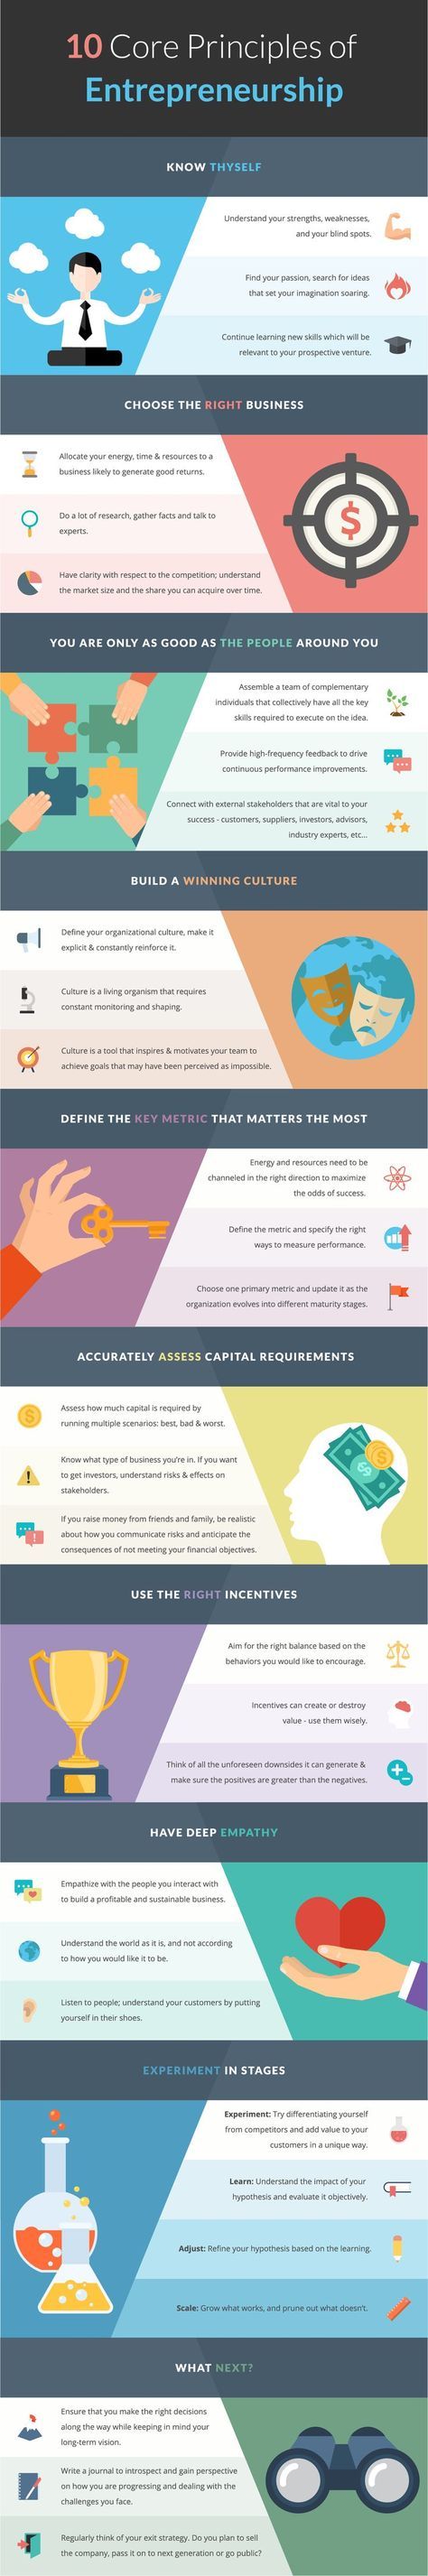 10 Core Principles of Entrepreneurship #infographic